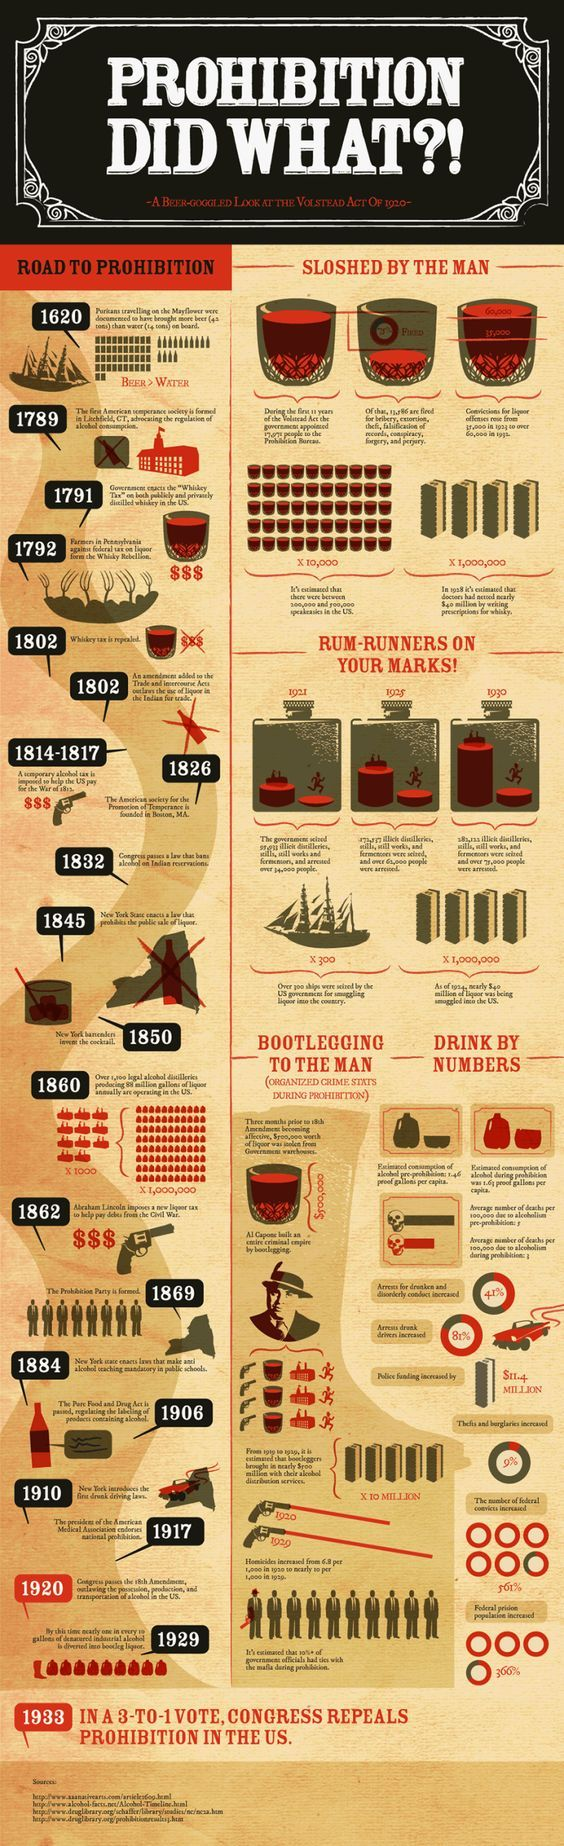 Infographic: Timeline and consequences of the Prohibition 1920-1933